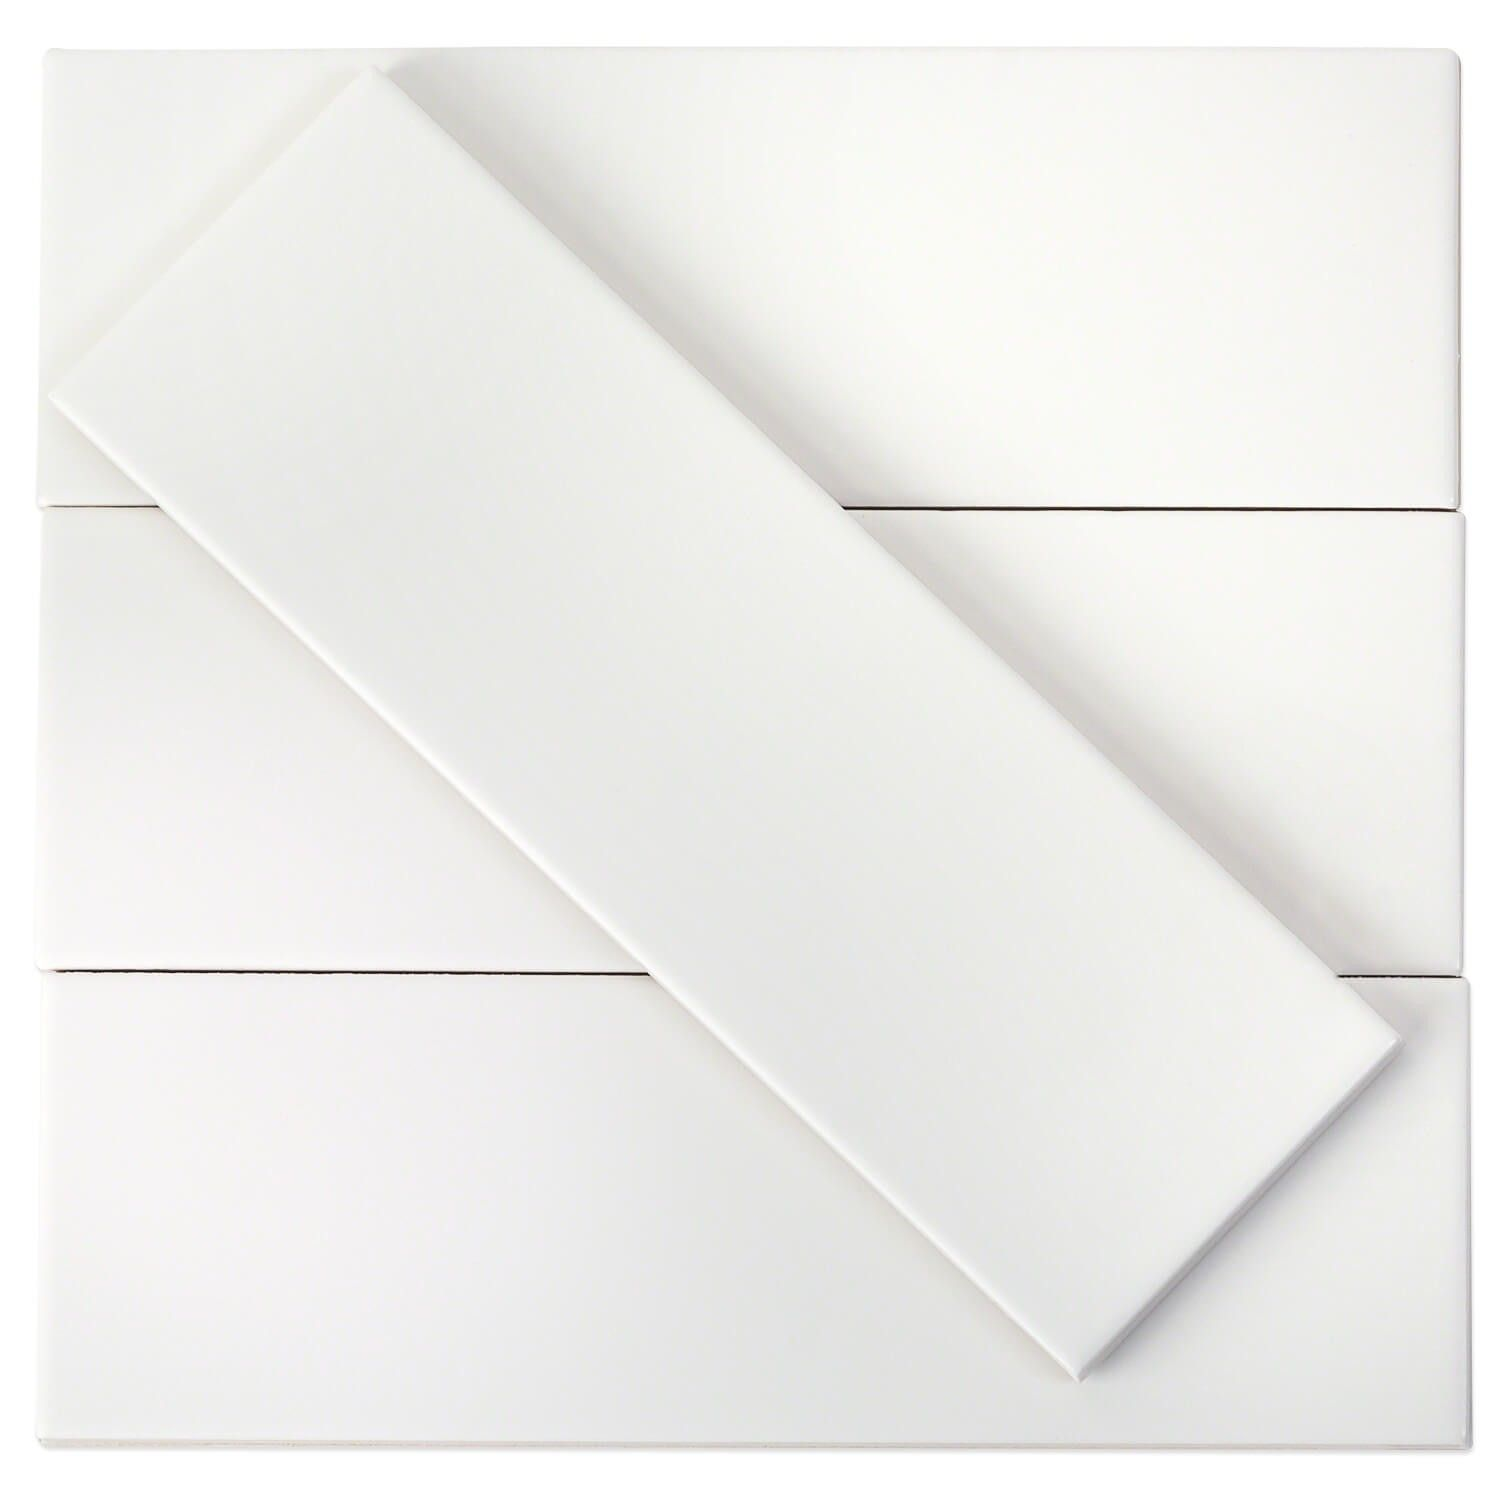 London White 3x9 Ceramic Tile Subway Tile Ceramic